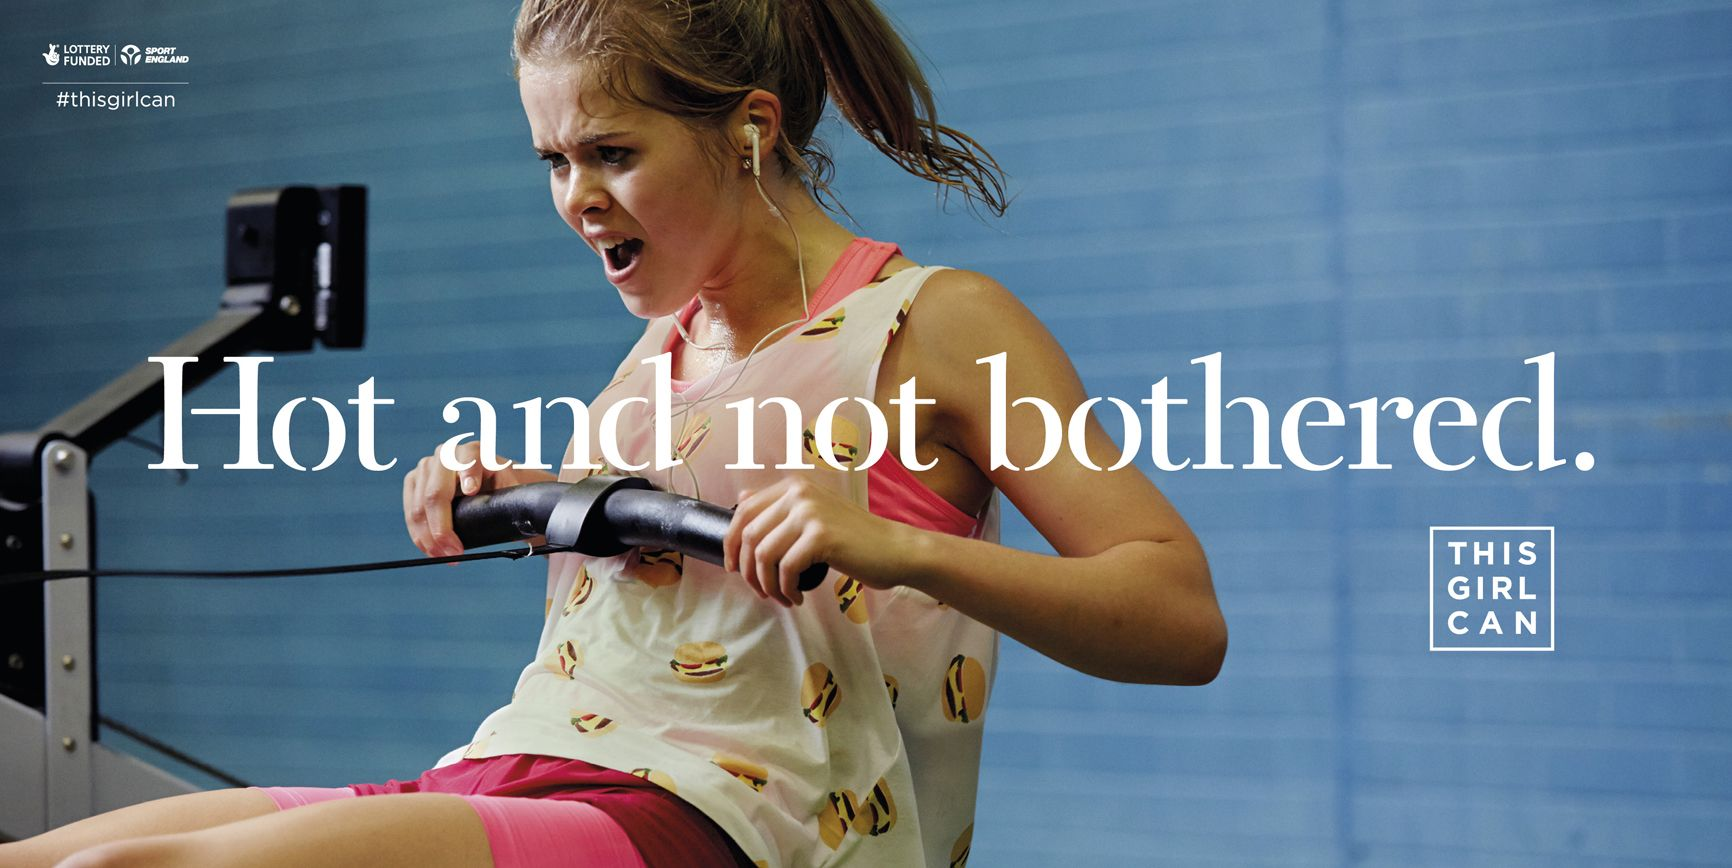 This Girl Can Campaign; Client: Sport England; 48 Sheet Poster; Photographer: Charlie Campbell; Head of Strategy: Vicki Holgate; Senior Strategist: Nic Willison; Managing Director: Sharon Jiggins; Account Director: Hollie Loxley; Copywriter: Simon Cenamor; Art Director: Raymond Chan; Creative Director: Bryn Attewell; Executive Creative Director: Al Young; Agency: FCB Inferno, UK